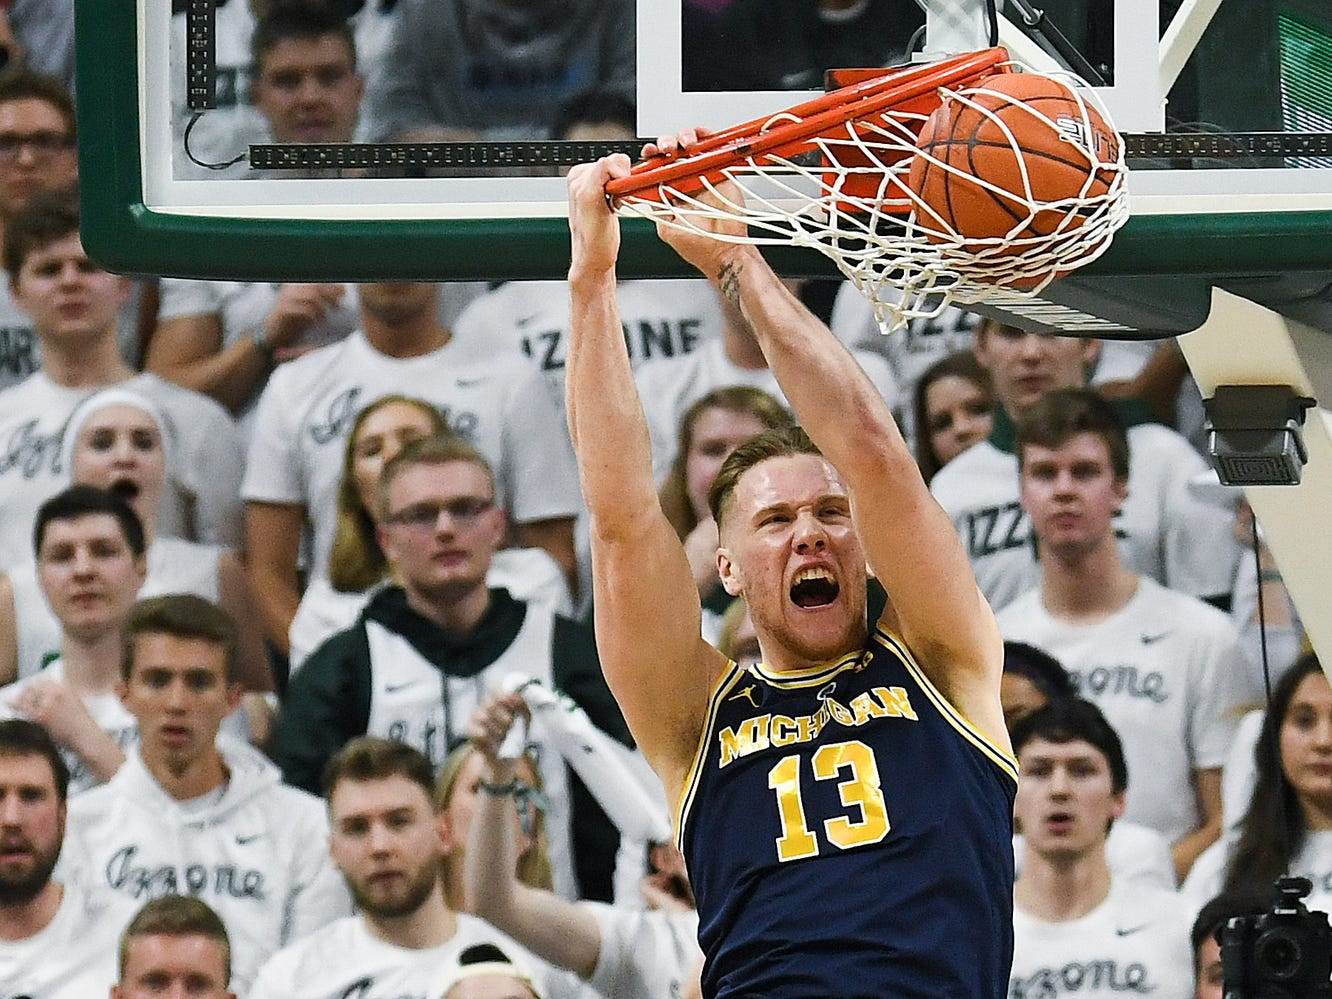 Michigan's Ignas Brazdeikis dunks during the first half on Saturday, March 9, 2019, at the Breslin Center in East Lansing.